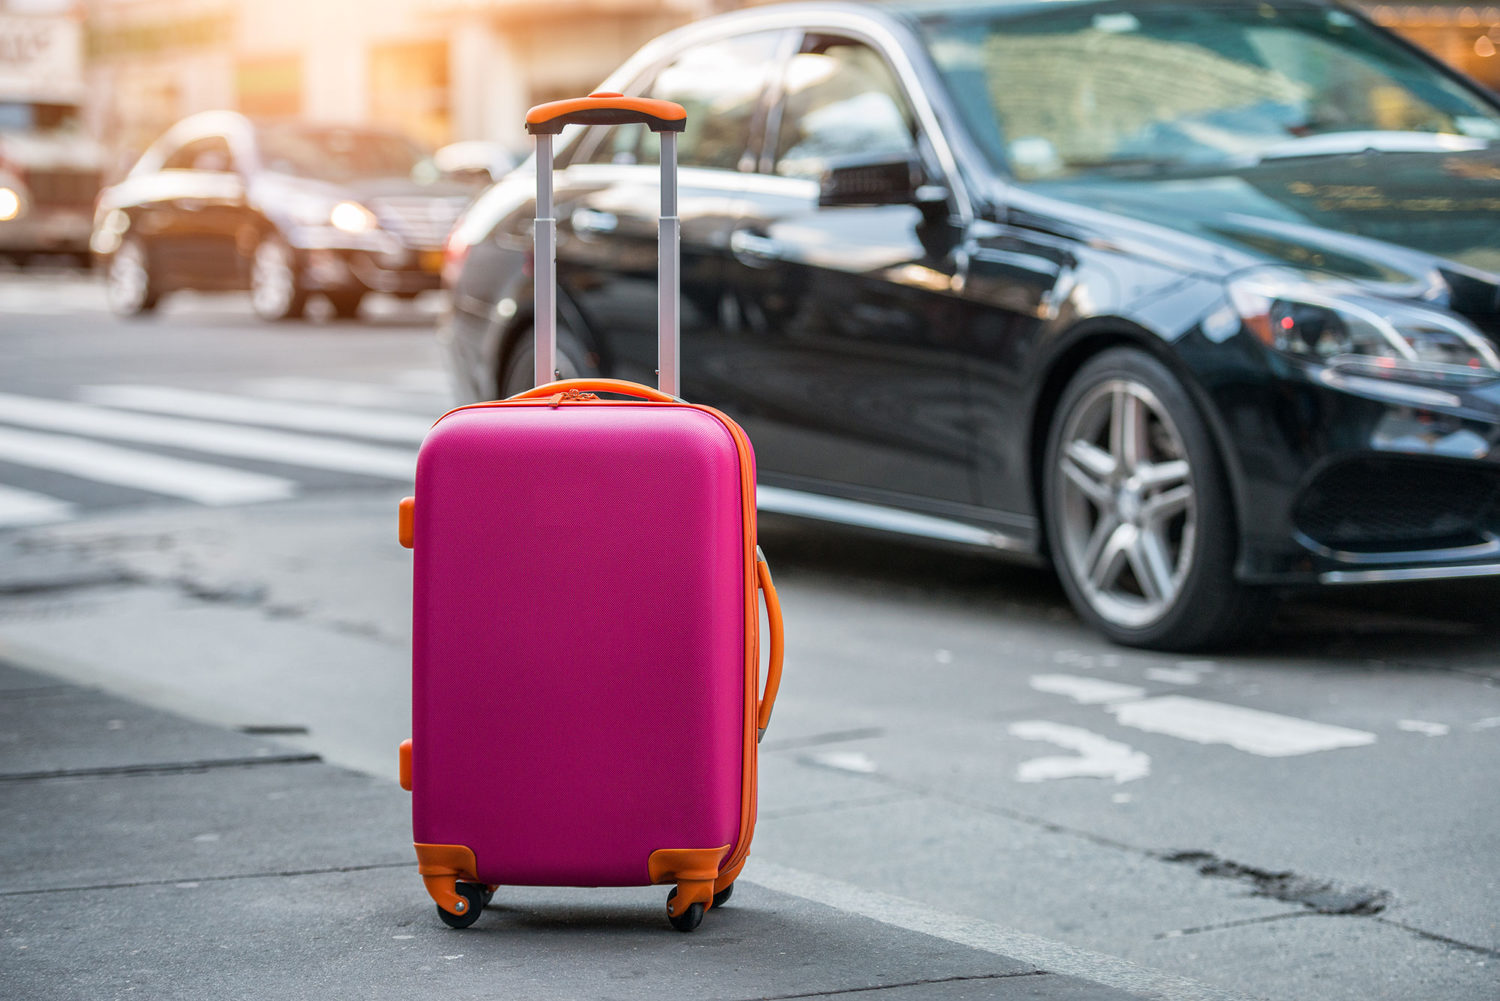 Pink suitcase waiting on a sidewalk with black luxury car in background